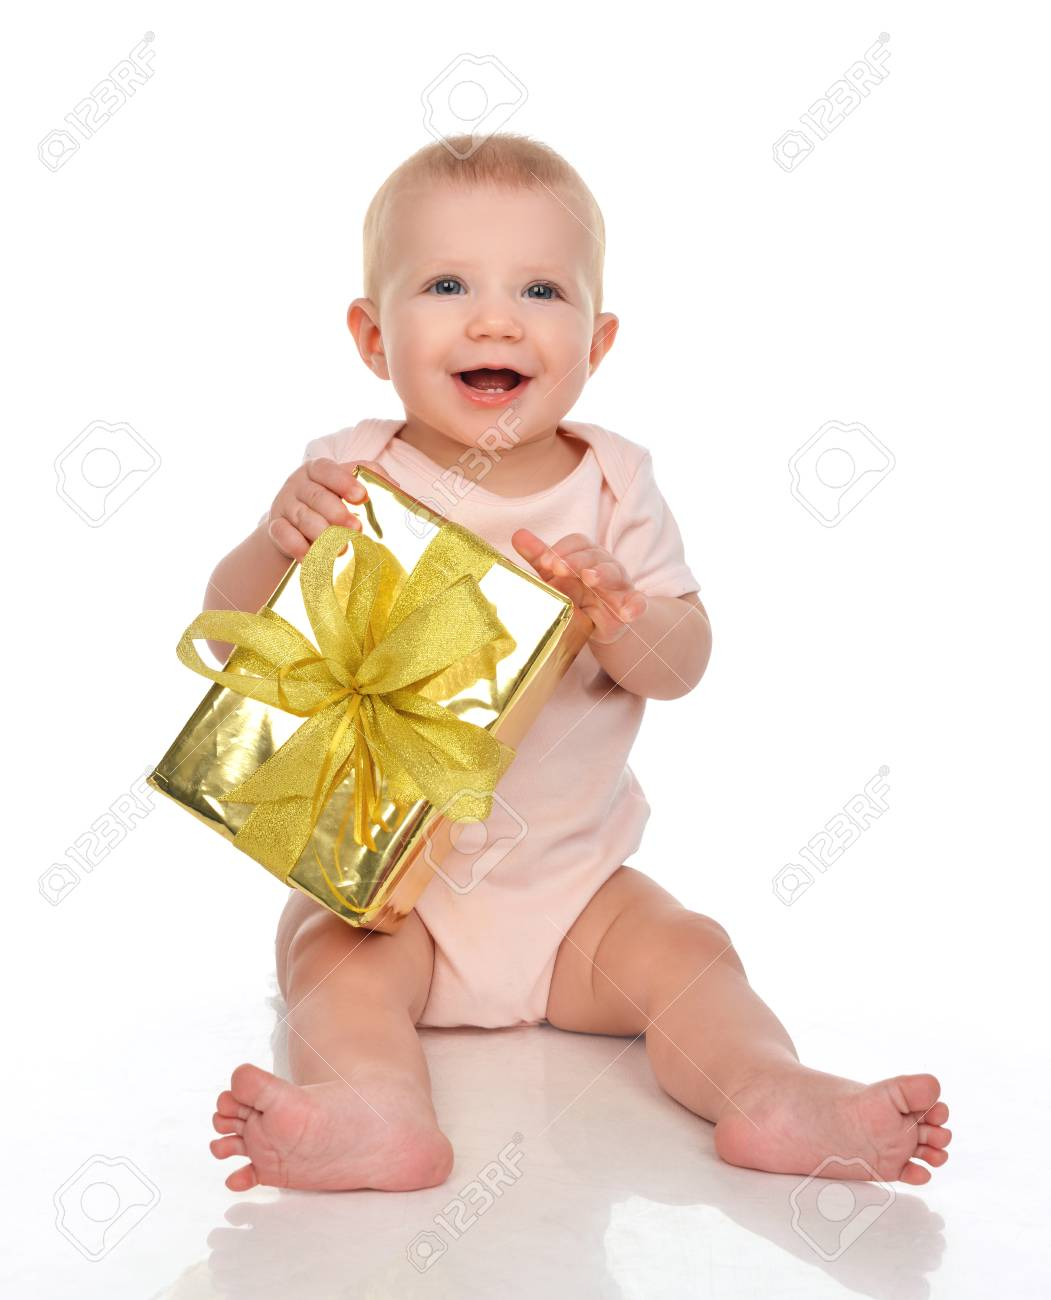 Infant Child Baby Toddler Kid With Gold Present Gift For Birthday Or Valentines Day Isolated On